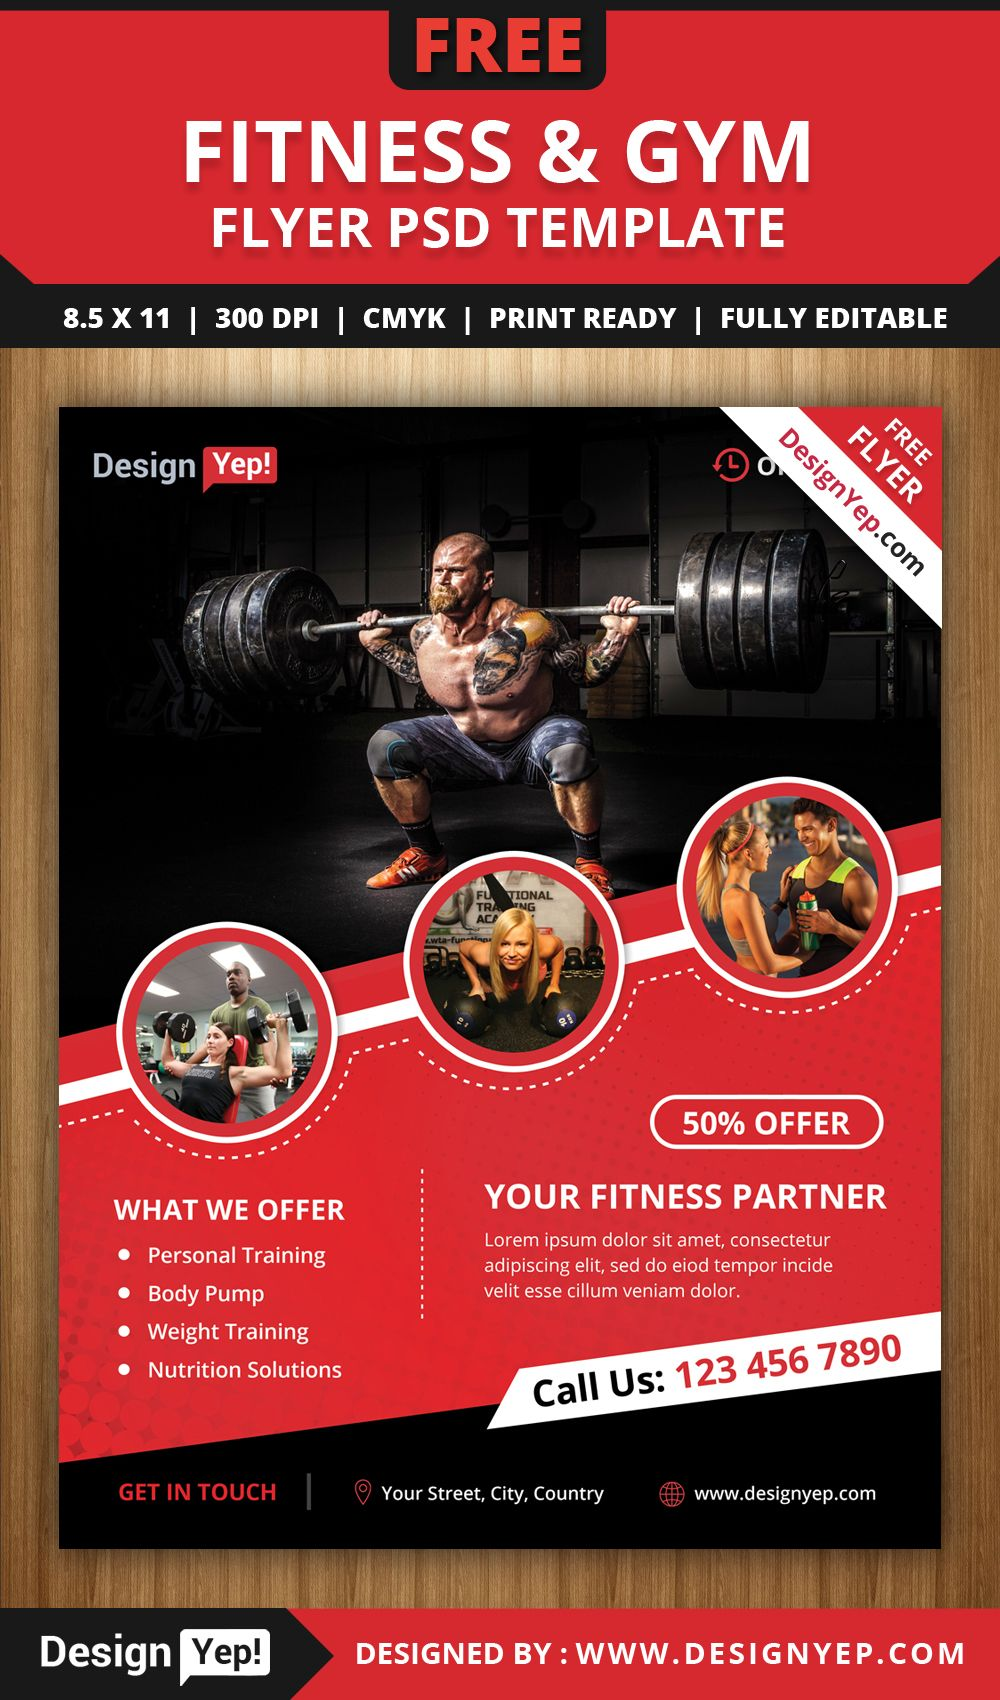 free fitness gym flyer psd template free flyers flyer template